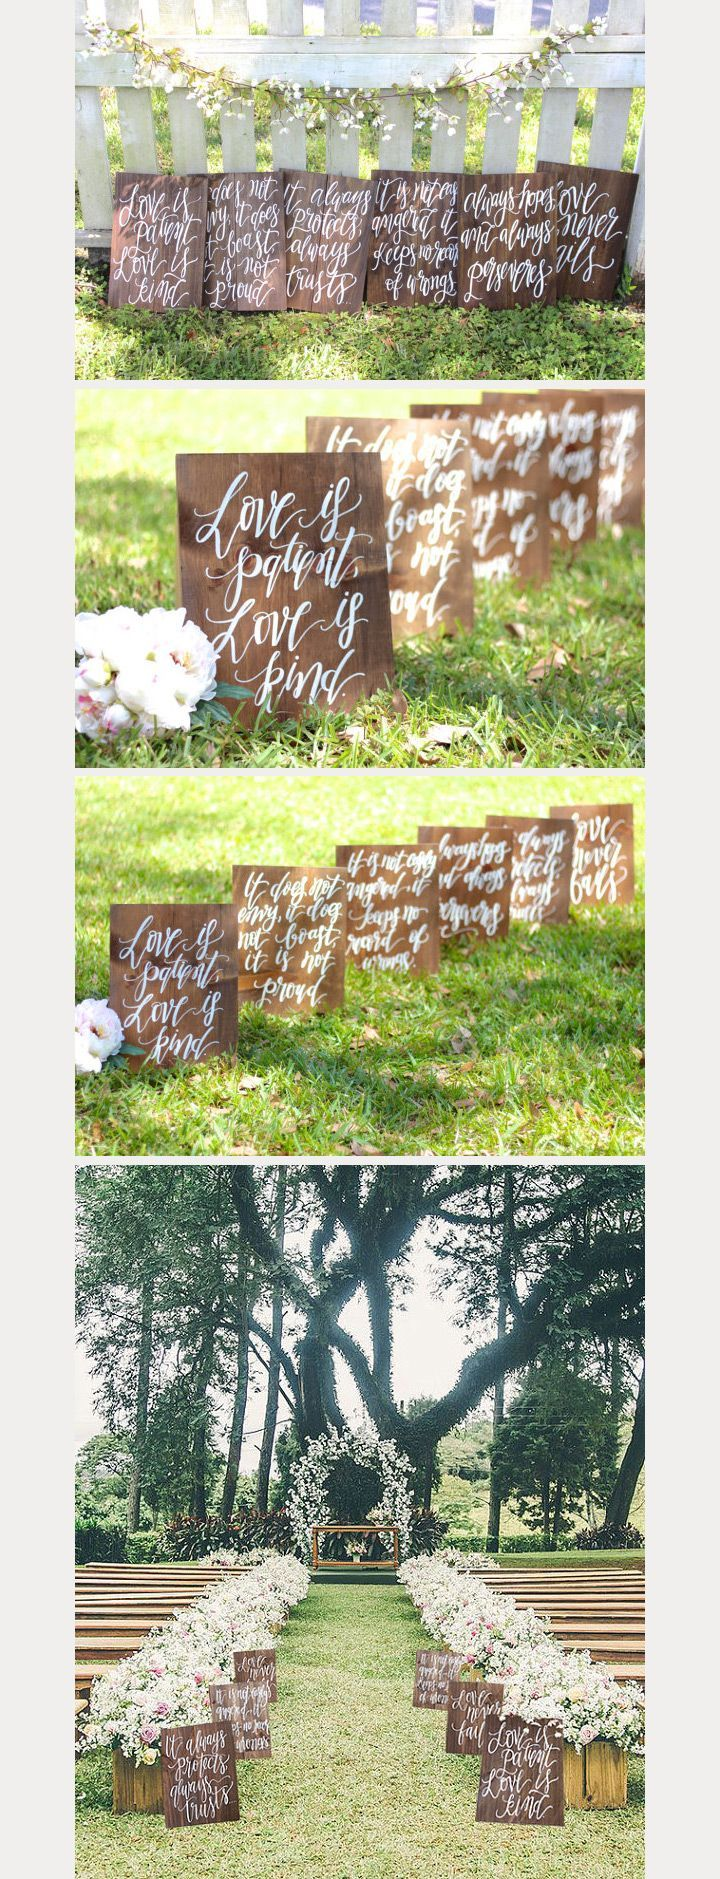 """how amazing are these rustic wedding signs?  gorgeous when used to line the wedding ceremony aisle! ~  we <span class=""""emoji-outer emoji-sizer""""><span class=""""emoji-inner"""" style=""""background: url(chrome-extension://immhpnclomdloikkpcefncmfgjbkojmh/emoji-data/sheet_apple_64.png);background-position:10% 22.5%;background-size:4100%"""" title=""""heart""""></span></span> this! http://moncheribridals.com"""